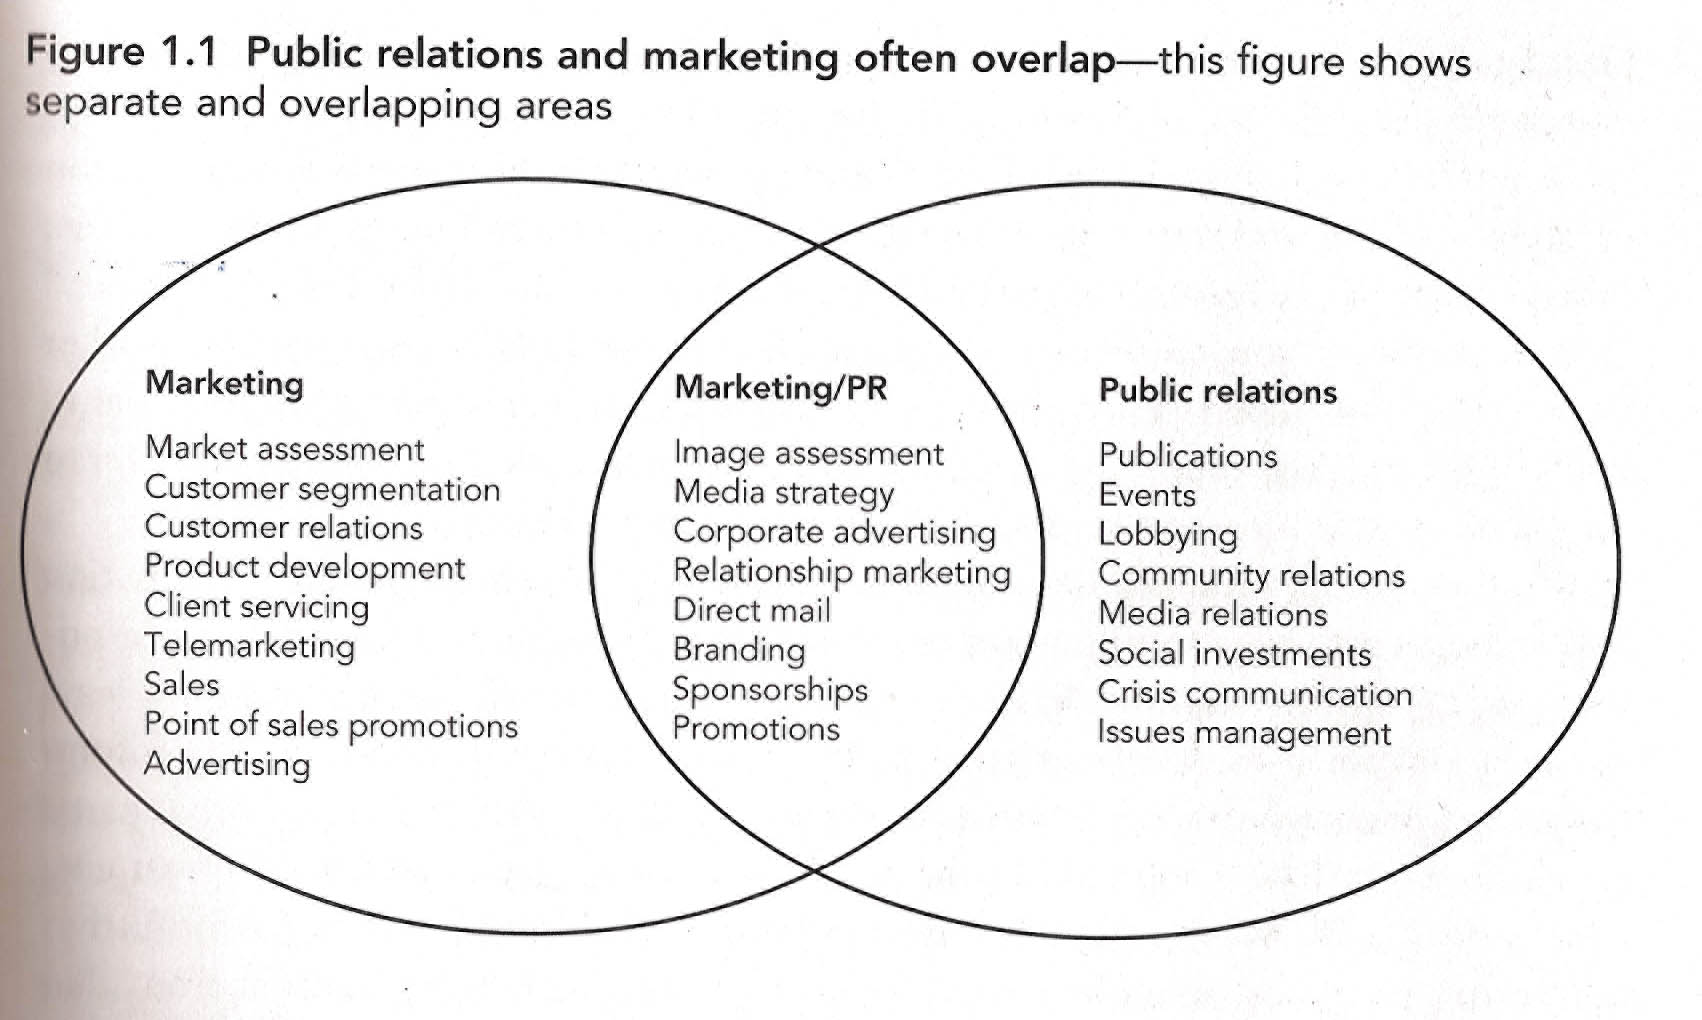 co orientation theory of public relations This introductory course reviews public relations and the resources and activities in the orientation will ask a question about public relations theory.